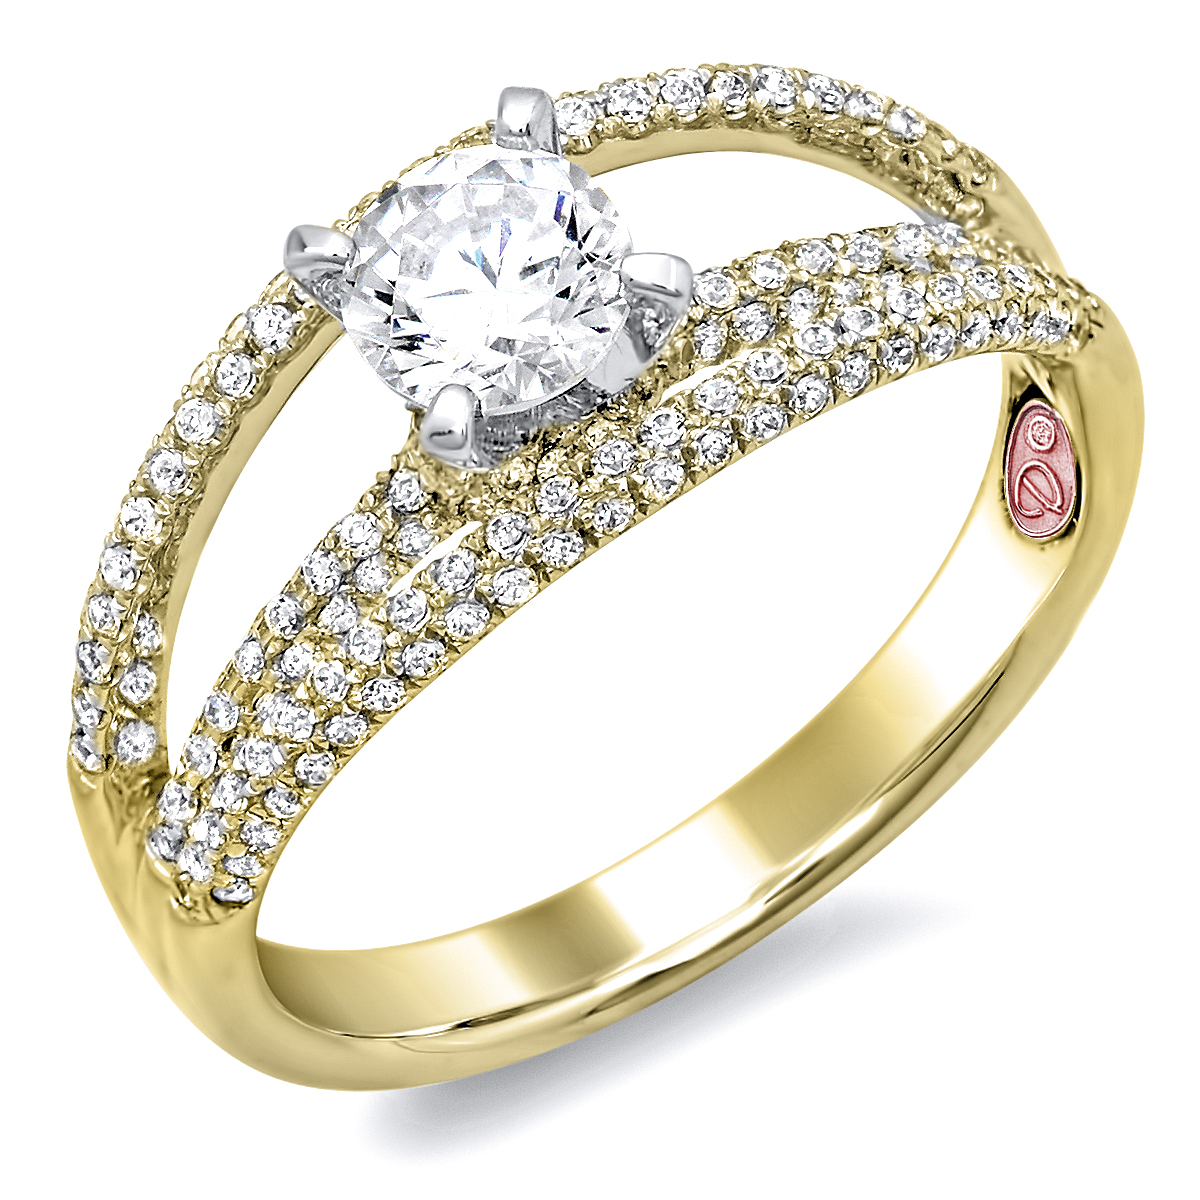 kelsall designs rings design satinised wedding ideas jewellery pair harriet ring